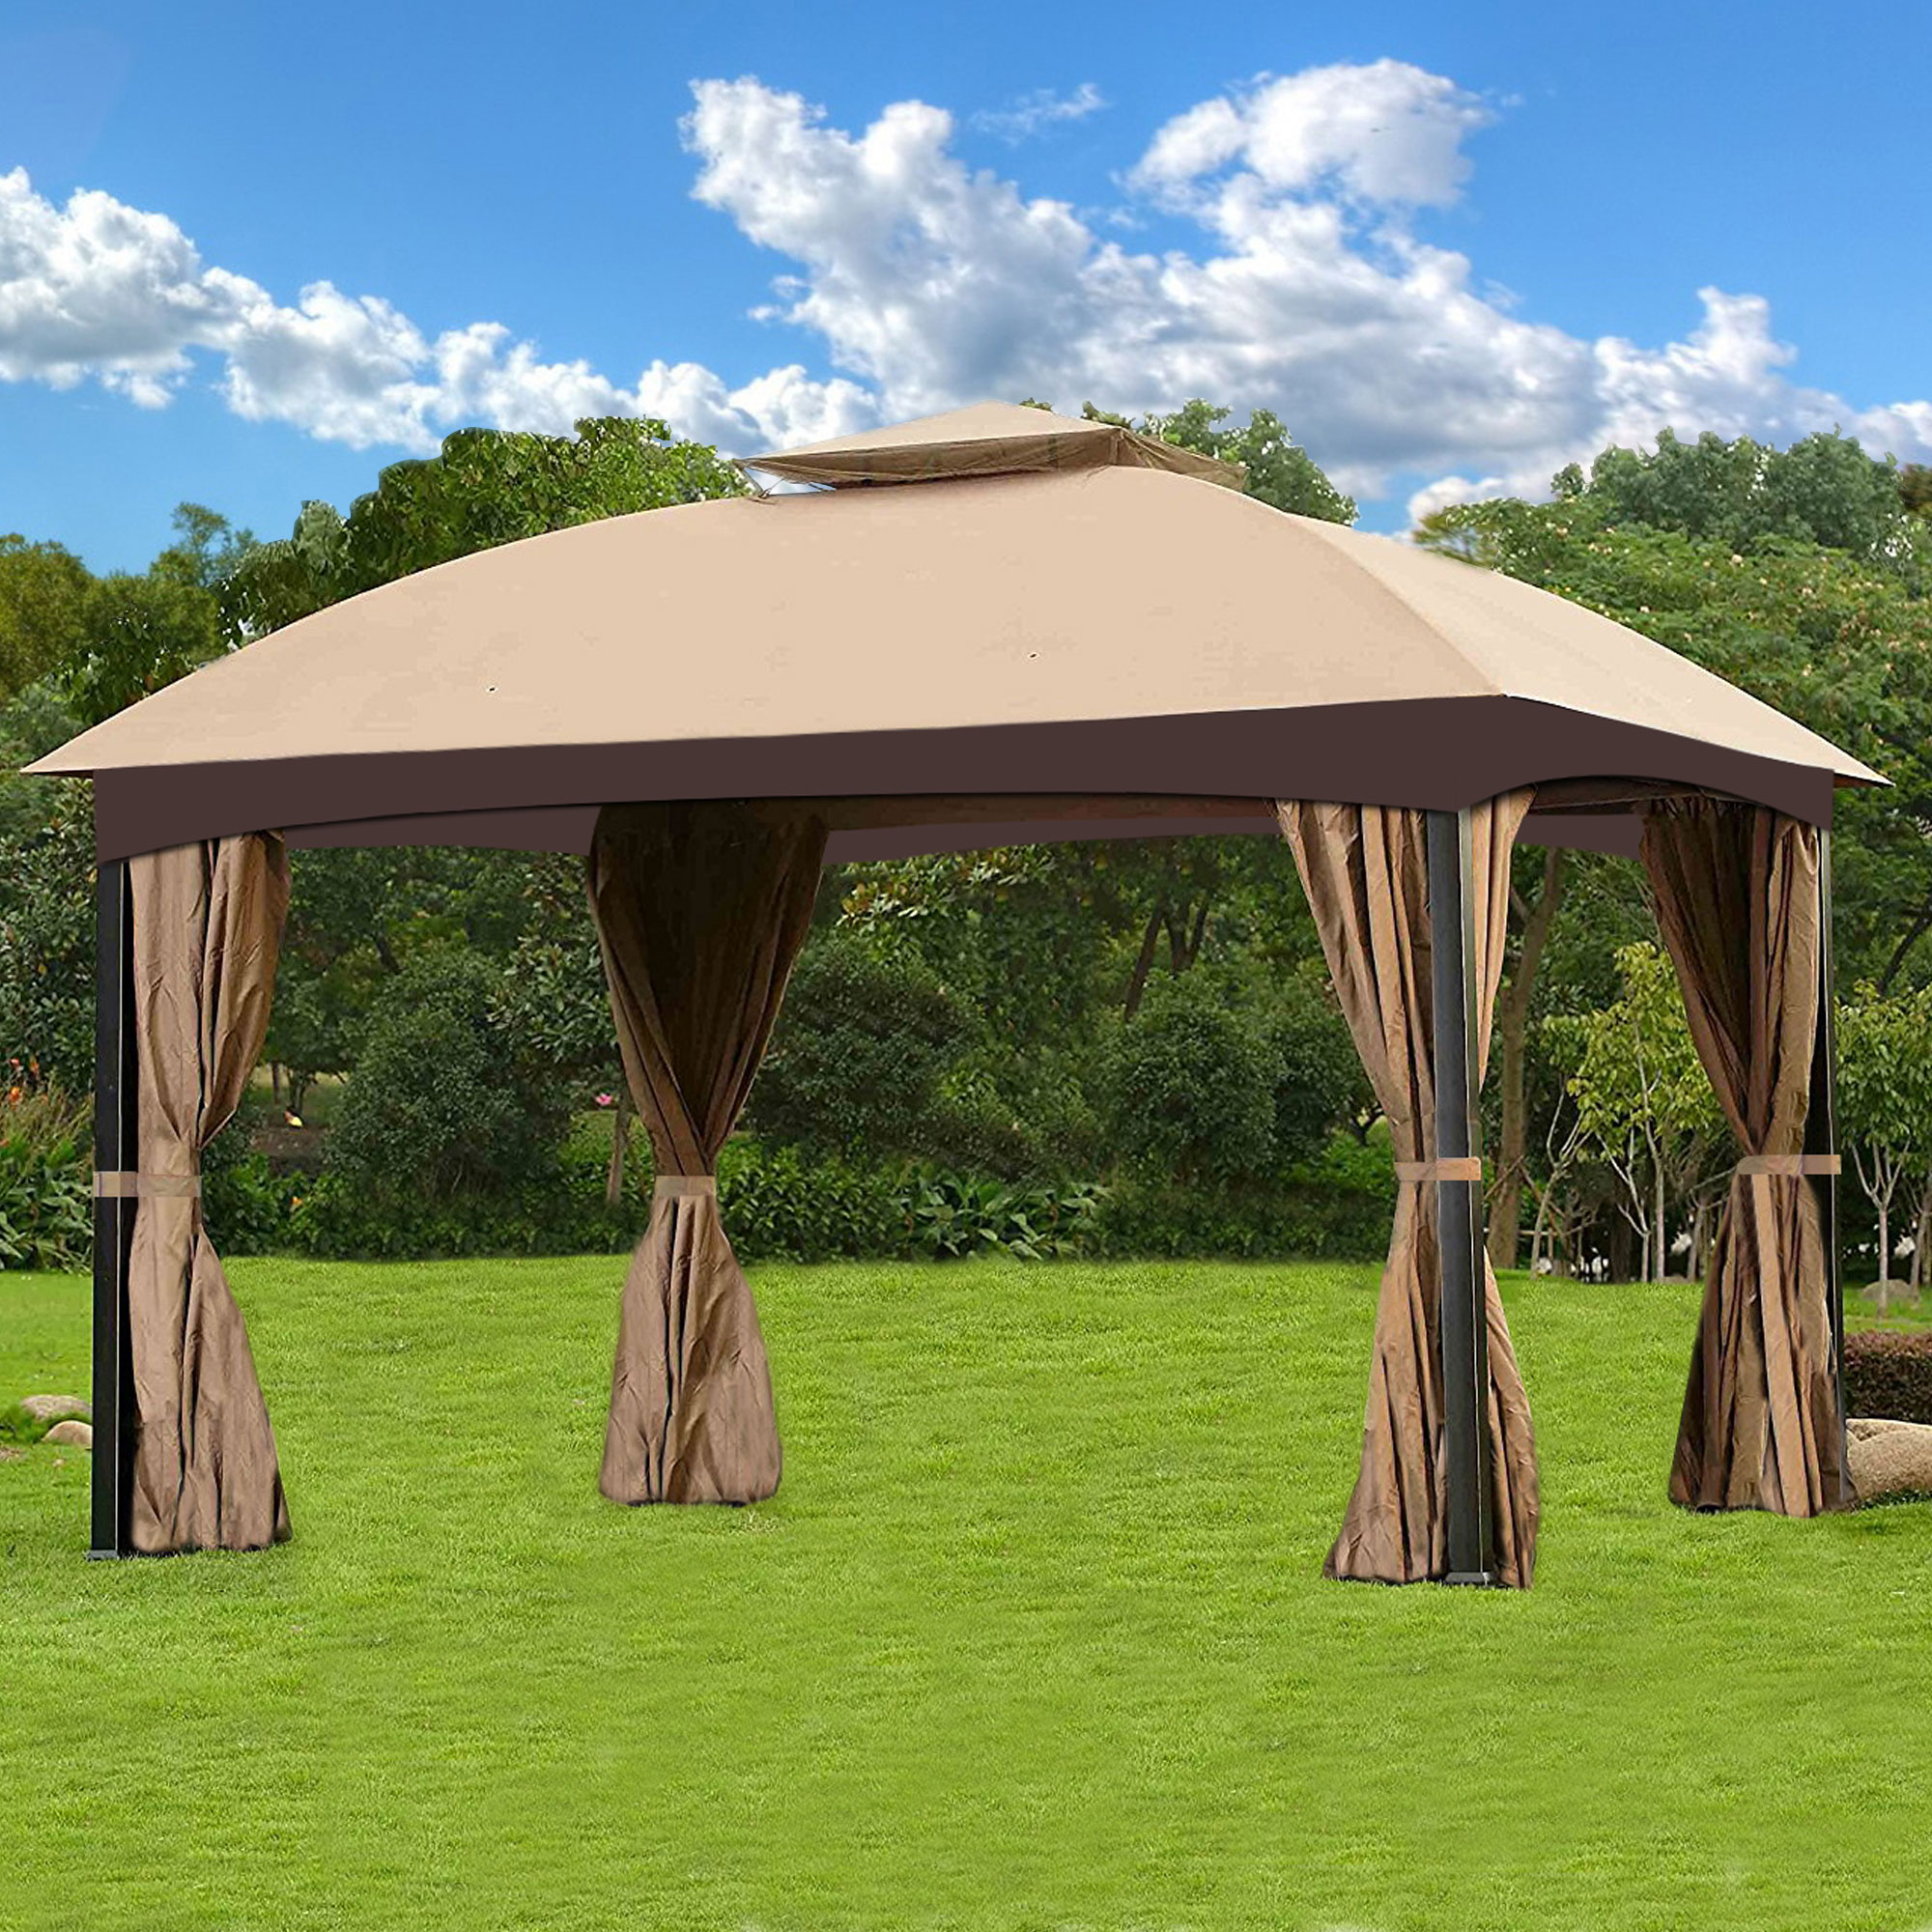 Cloud Mountain Garden Gazebo Polyester Fabric Patio Backyard Double Roof Vented Gazebo Canopy with 4 Sides Mosquito Netting And Privacy Fabric, Sand